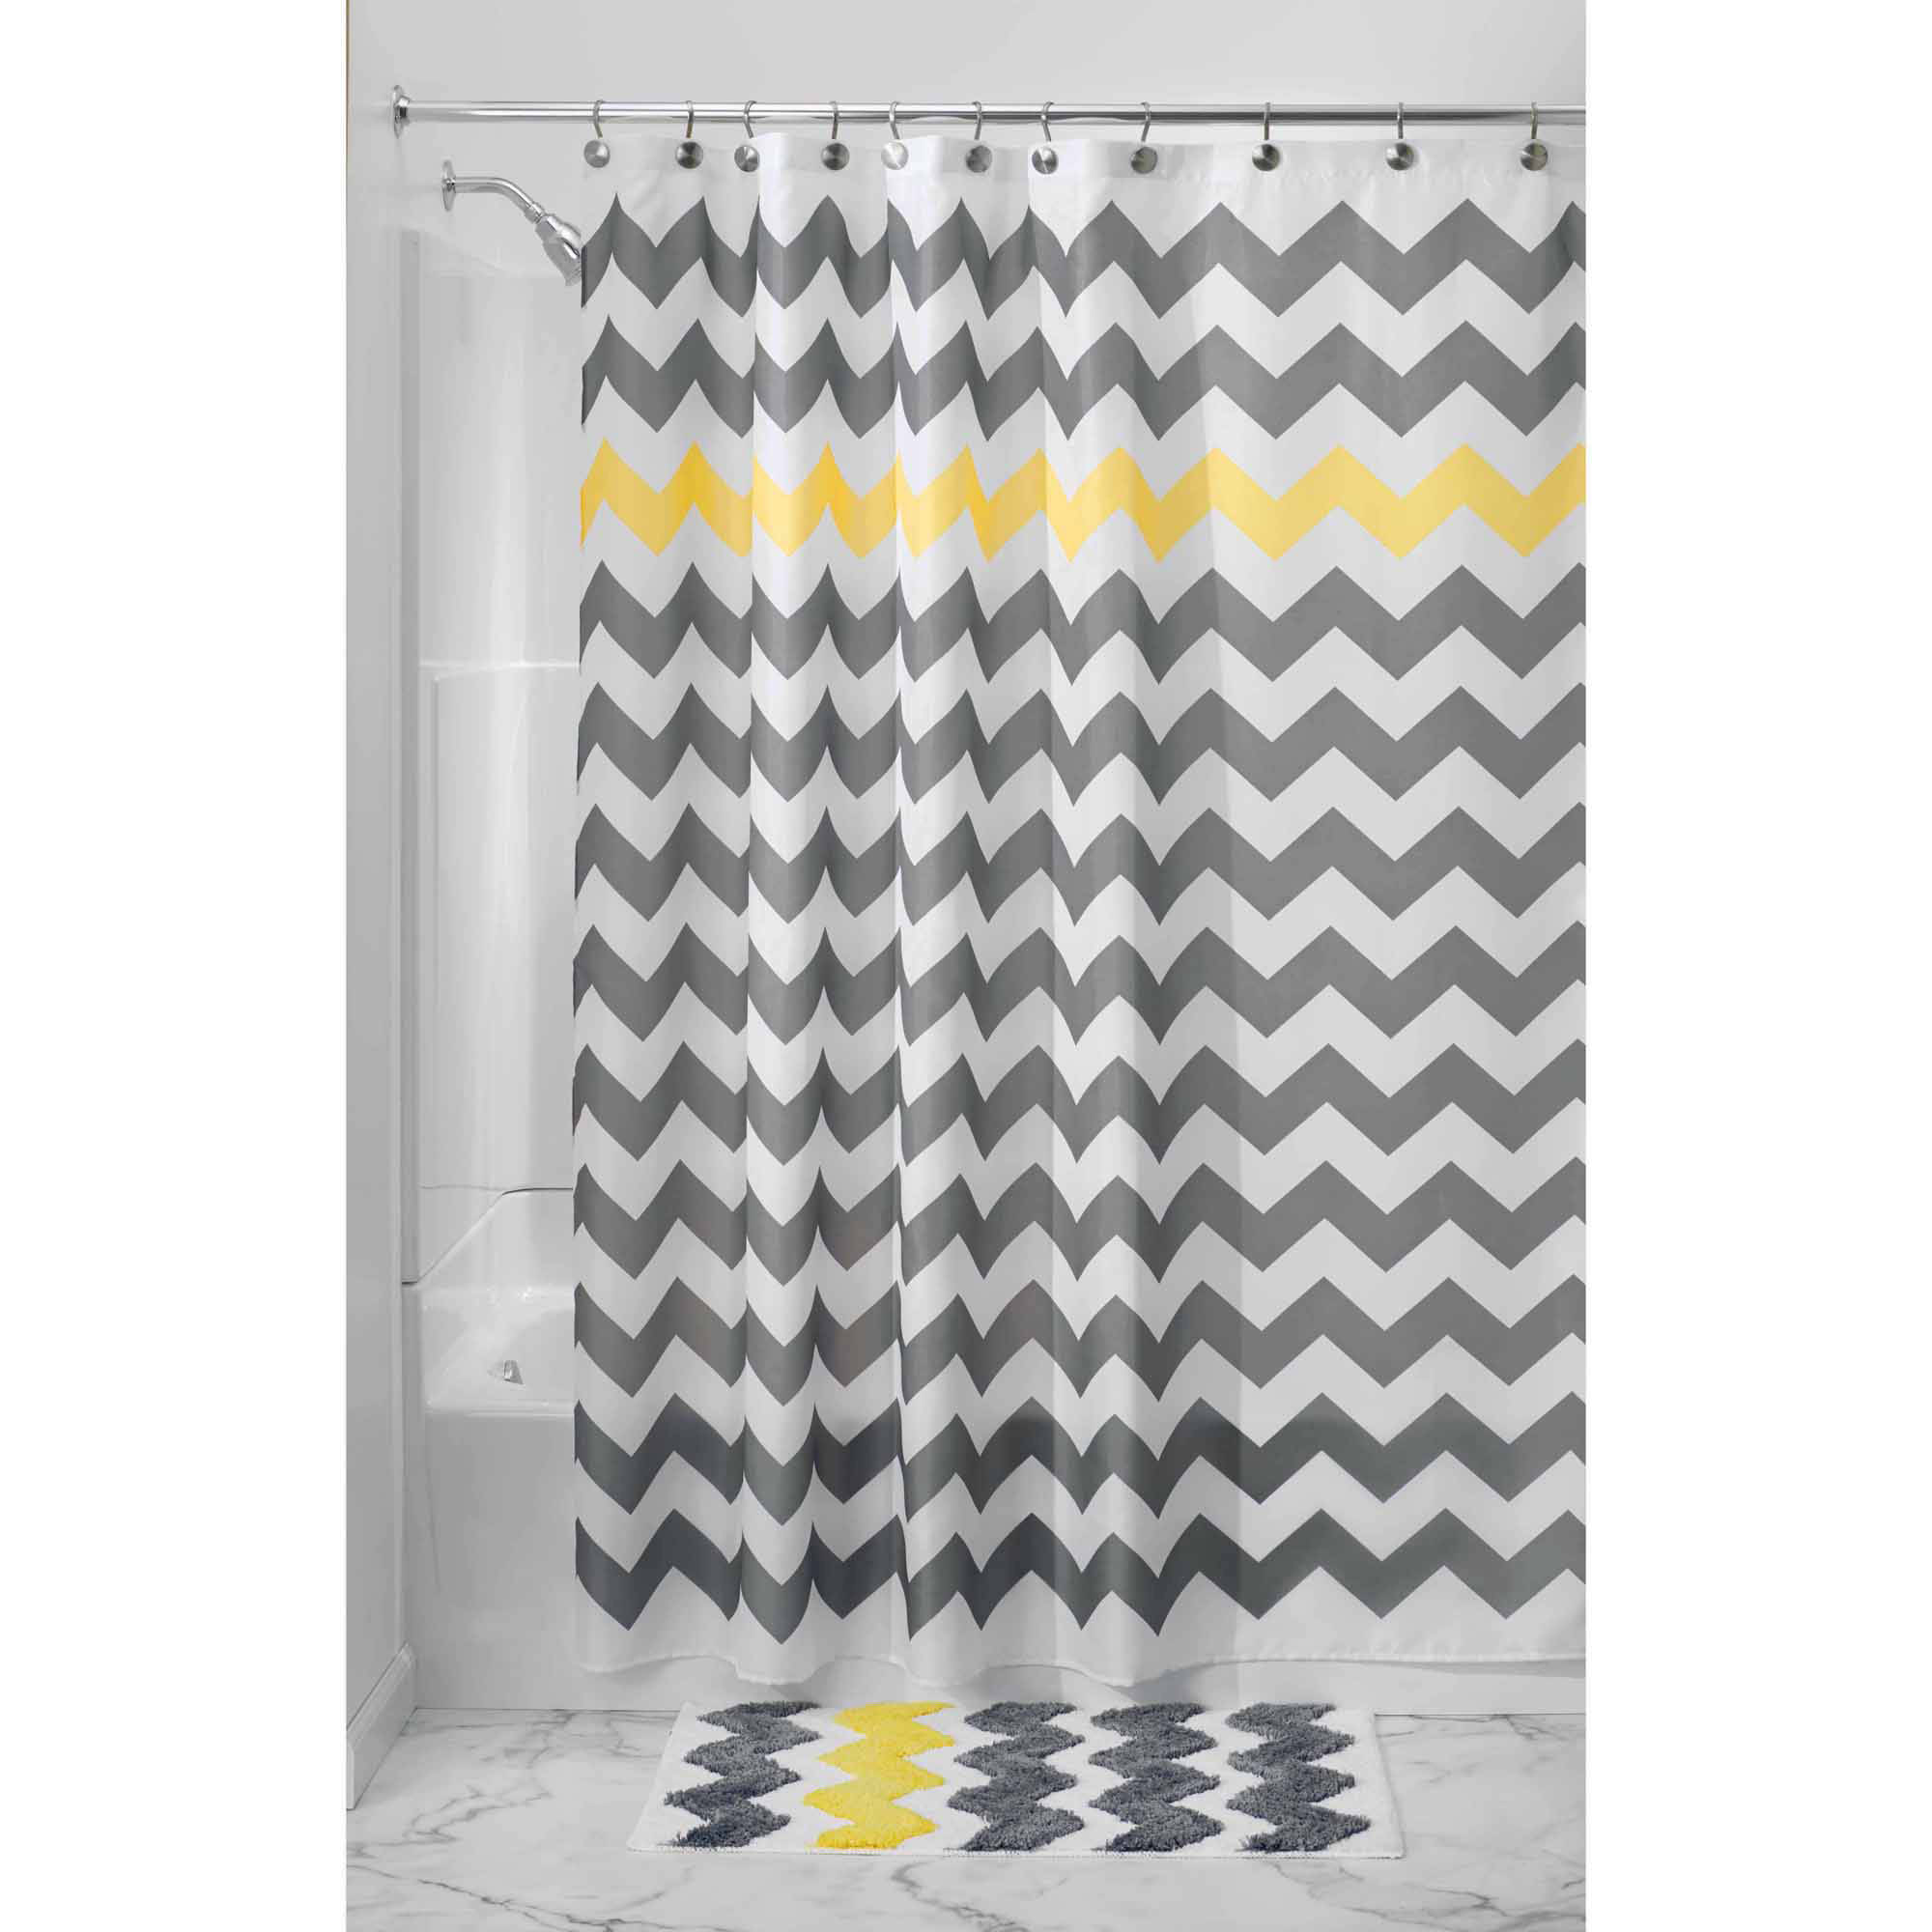 High Quality GoodGram Fabric Shower Curtain Liner With Mesh Pockets   White   Walmart.com